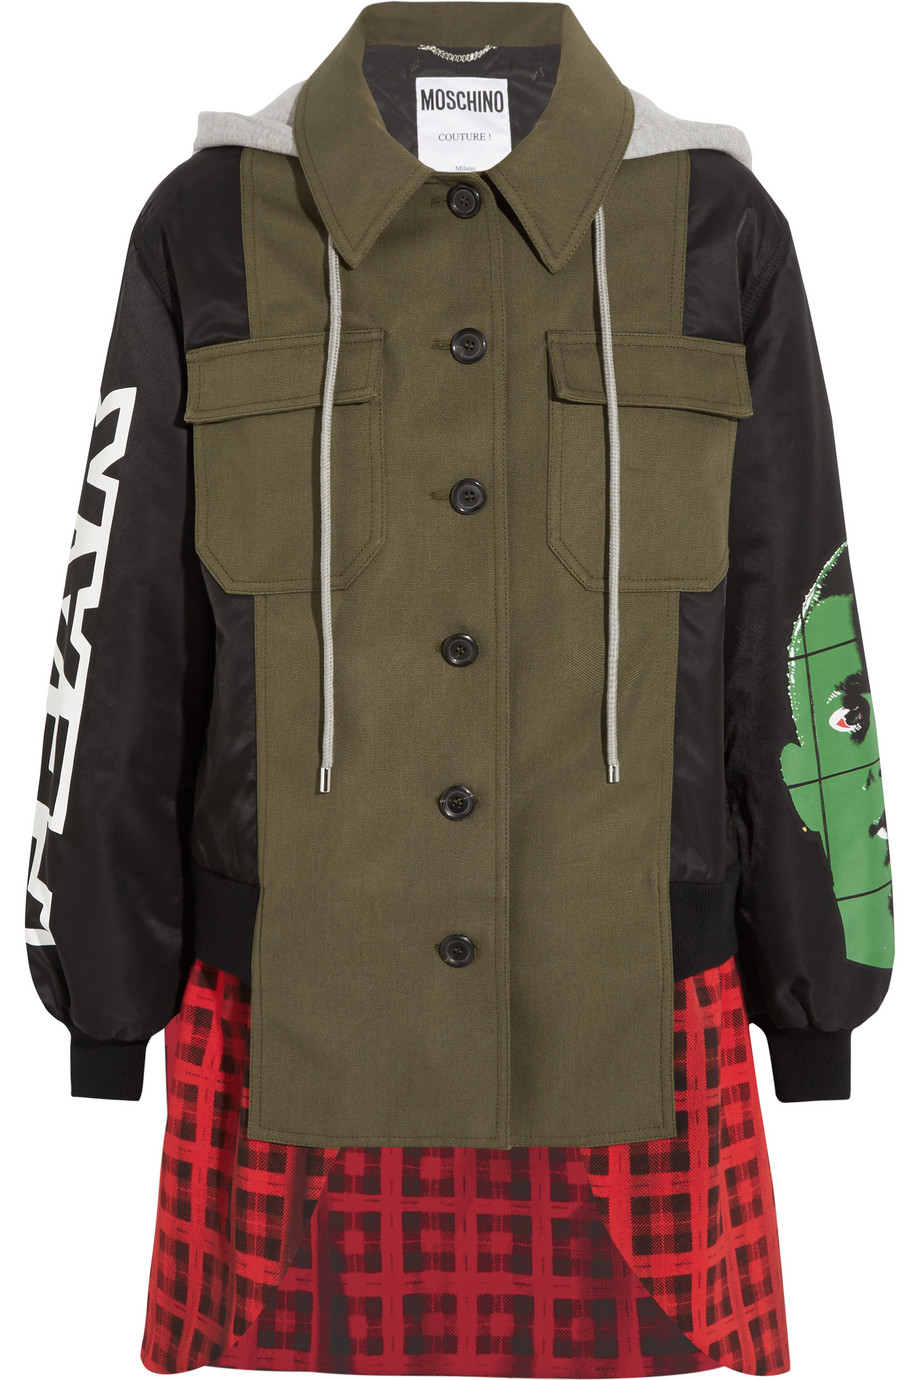 Moschino Hooded Printed Shell, Checked Wool-Blend and Cotton-Blend Canvas Jacket, Green, Women's, Size: 38